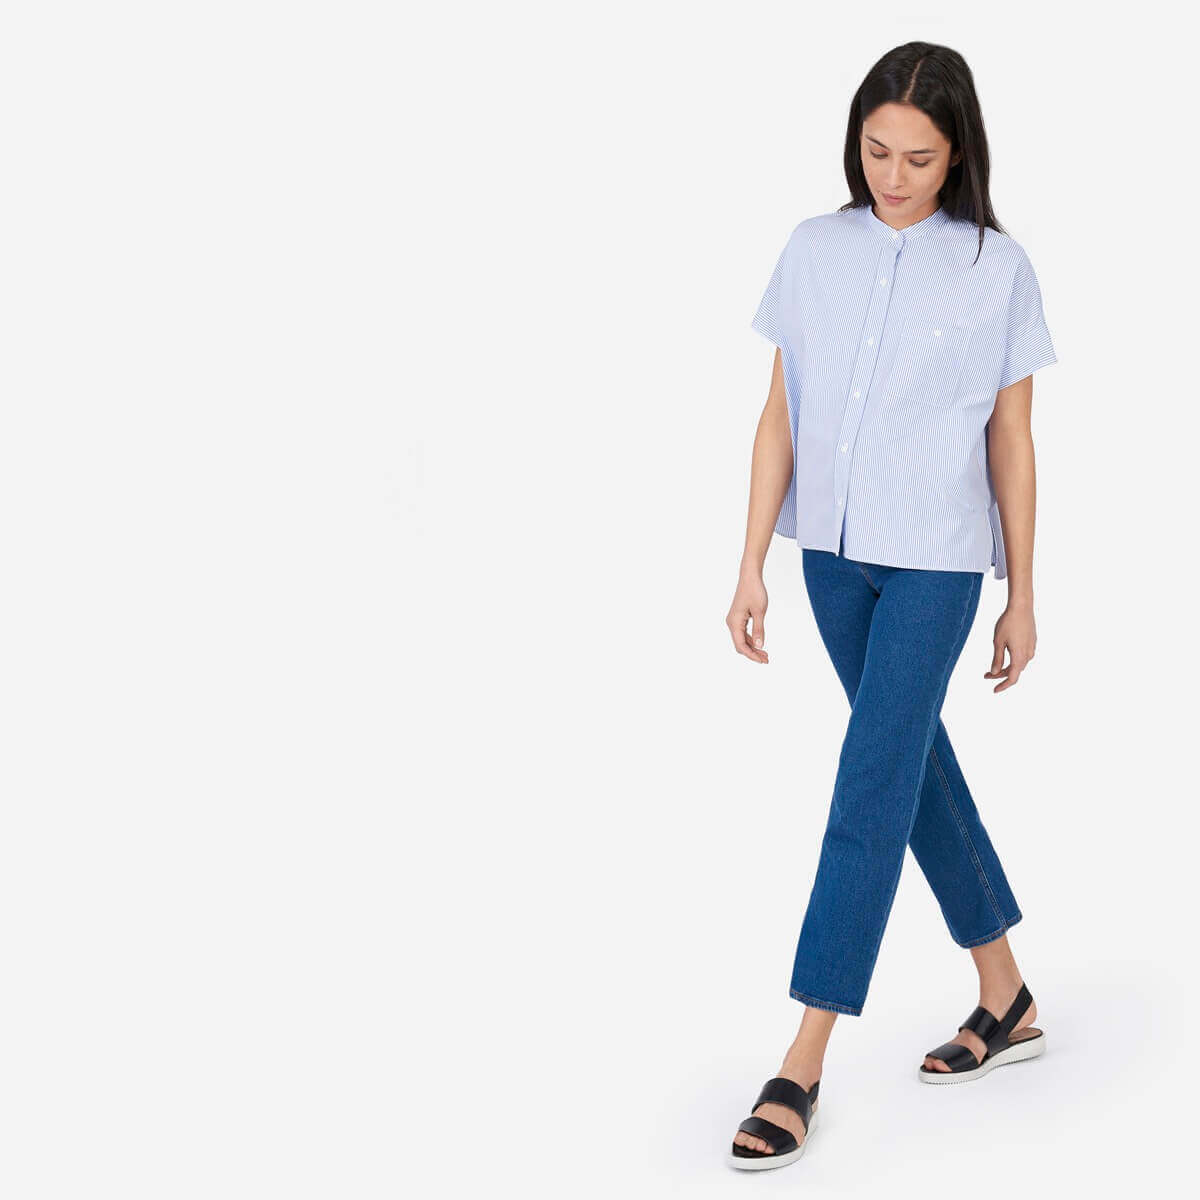 Everlane boxy white and blue striped shirt